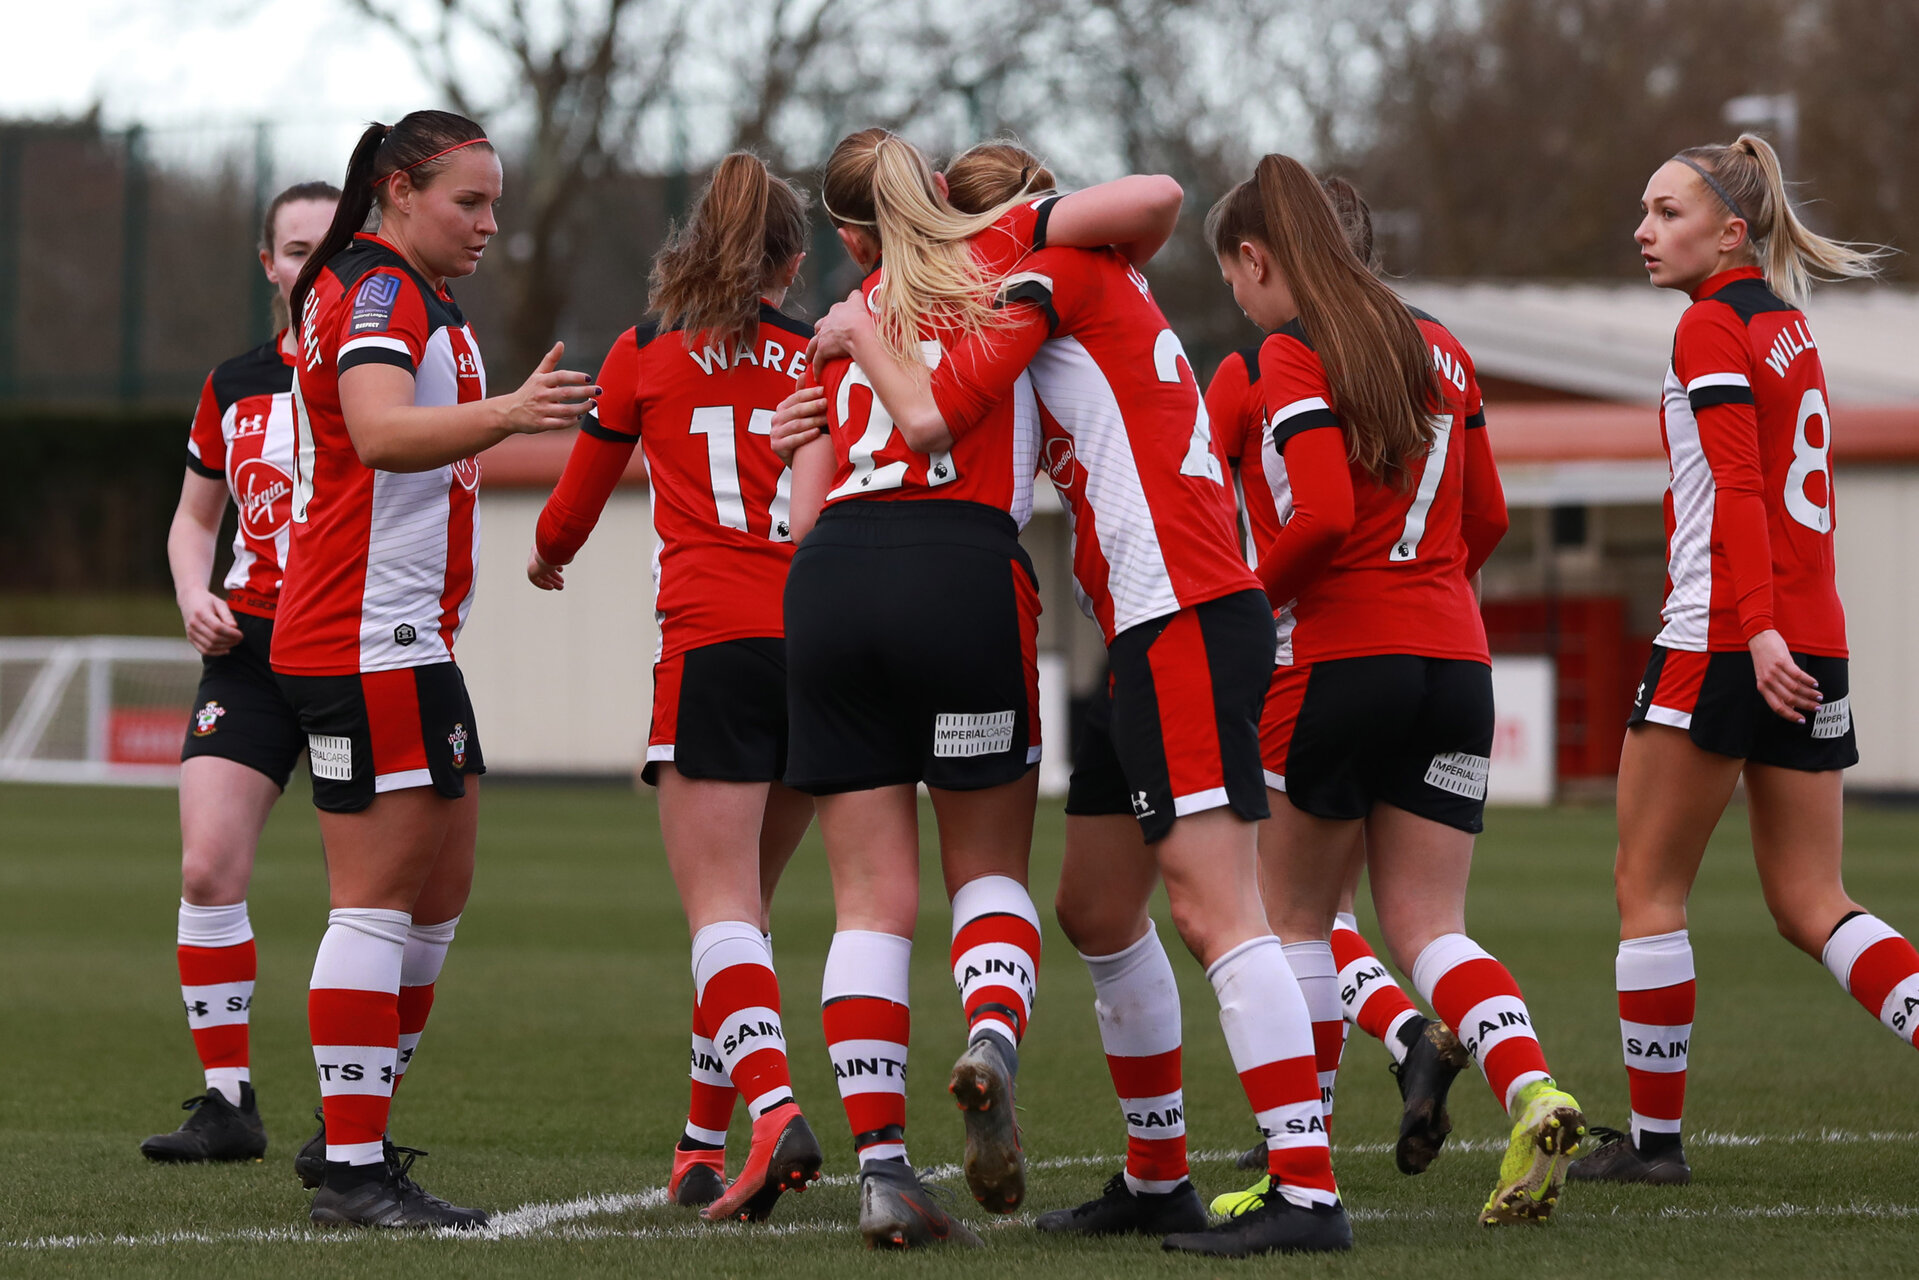 SOUTHAMPTON, ENGLAND - March 1: Southampton FC Women's players celebrate after Shannon Albuery of Southampton FC Womens scores her side's fifth goal during the FA Women's National League match between Southampton Women and Maidenhead United at Staplewood Campus on March 1 2020, Exeter, England. (Photo by Tom Mulholland/Southampton FC)